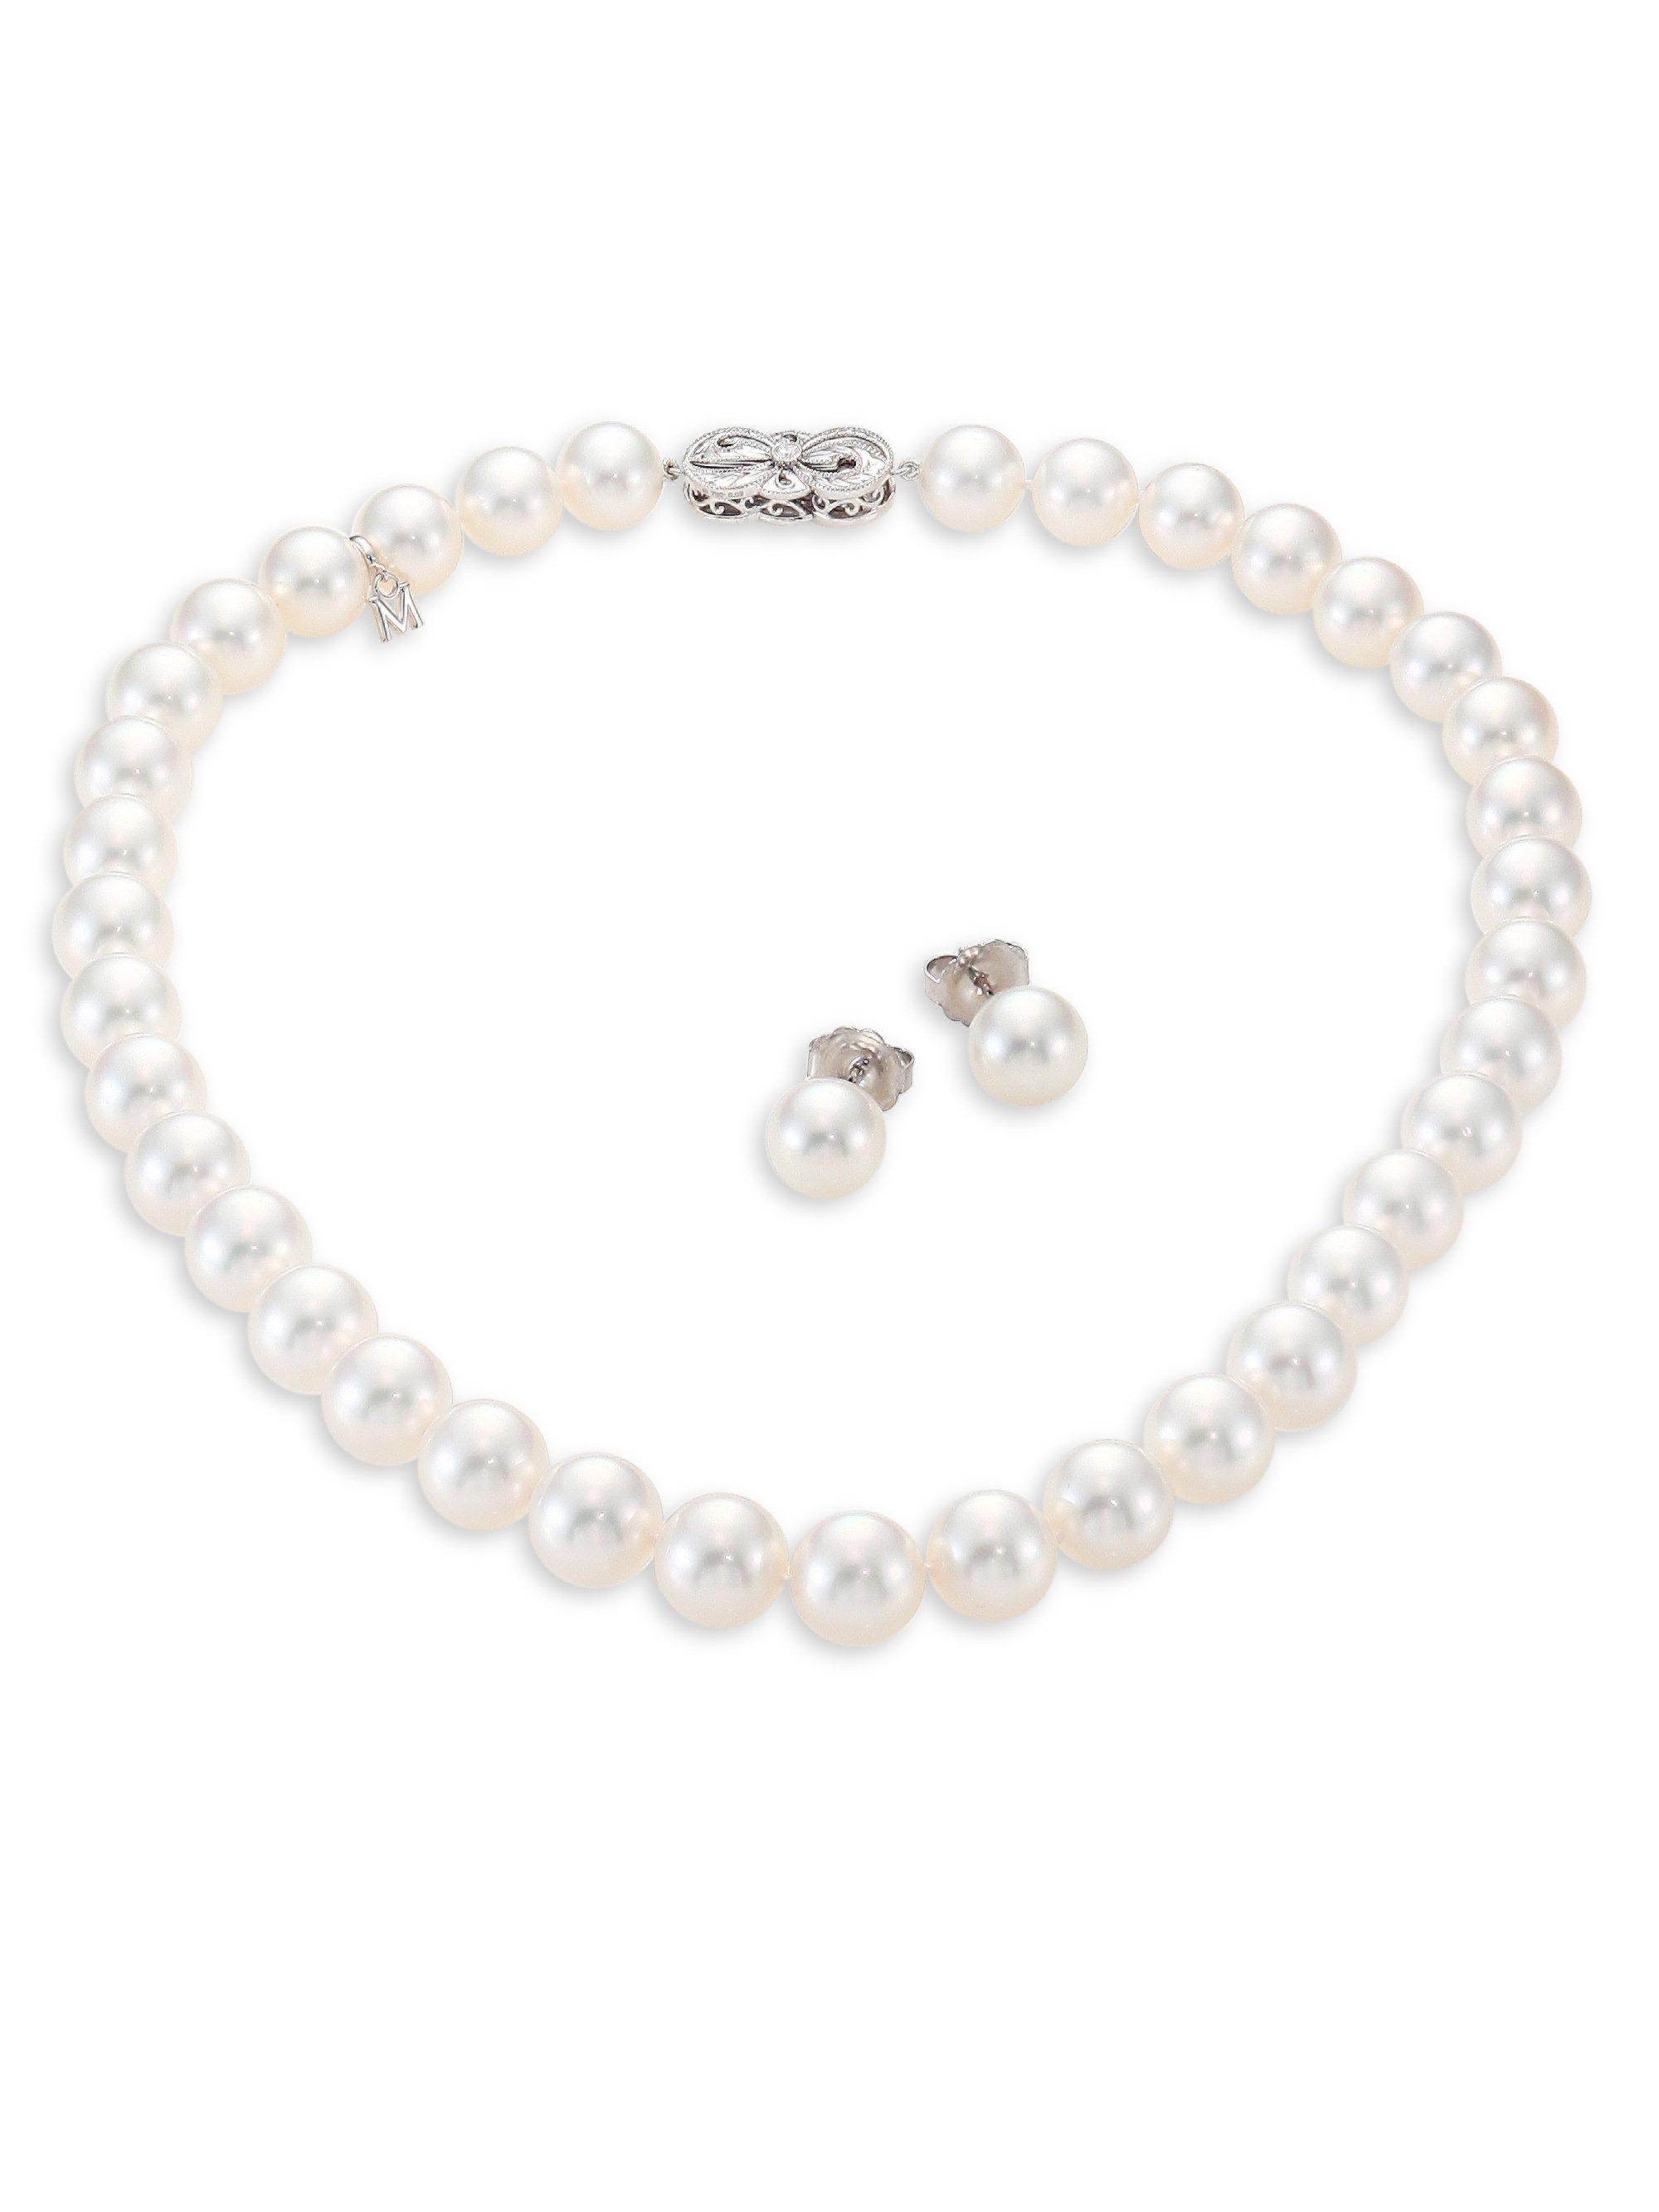 single cultured classic a beautiful item and pearls mikimoto click to of strand full expand